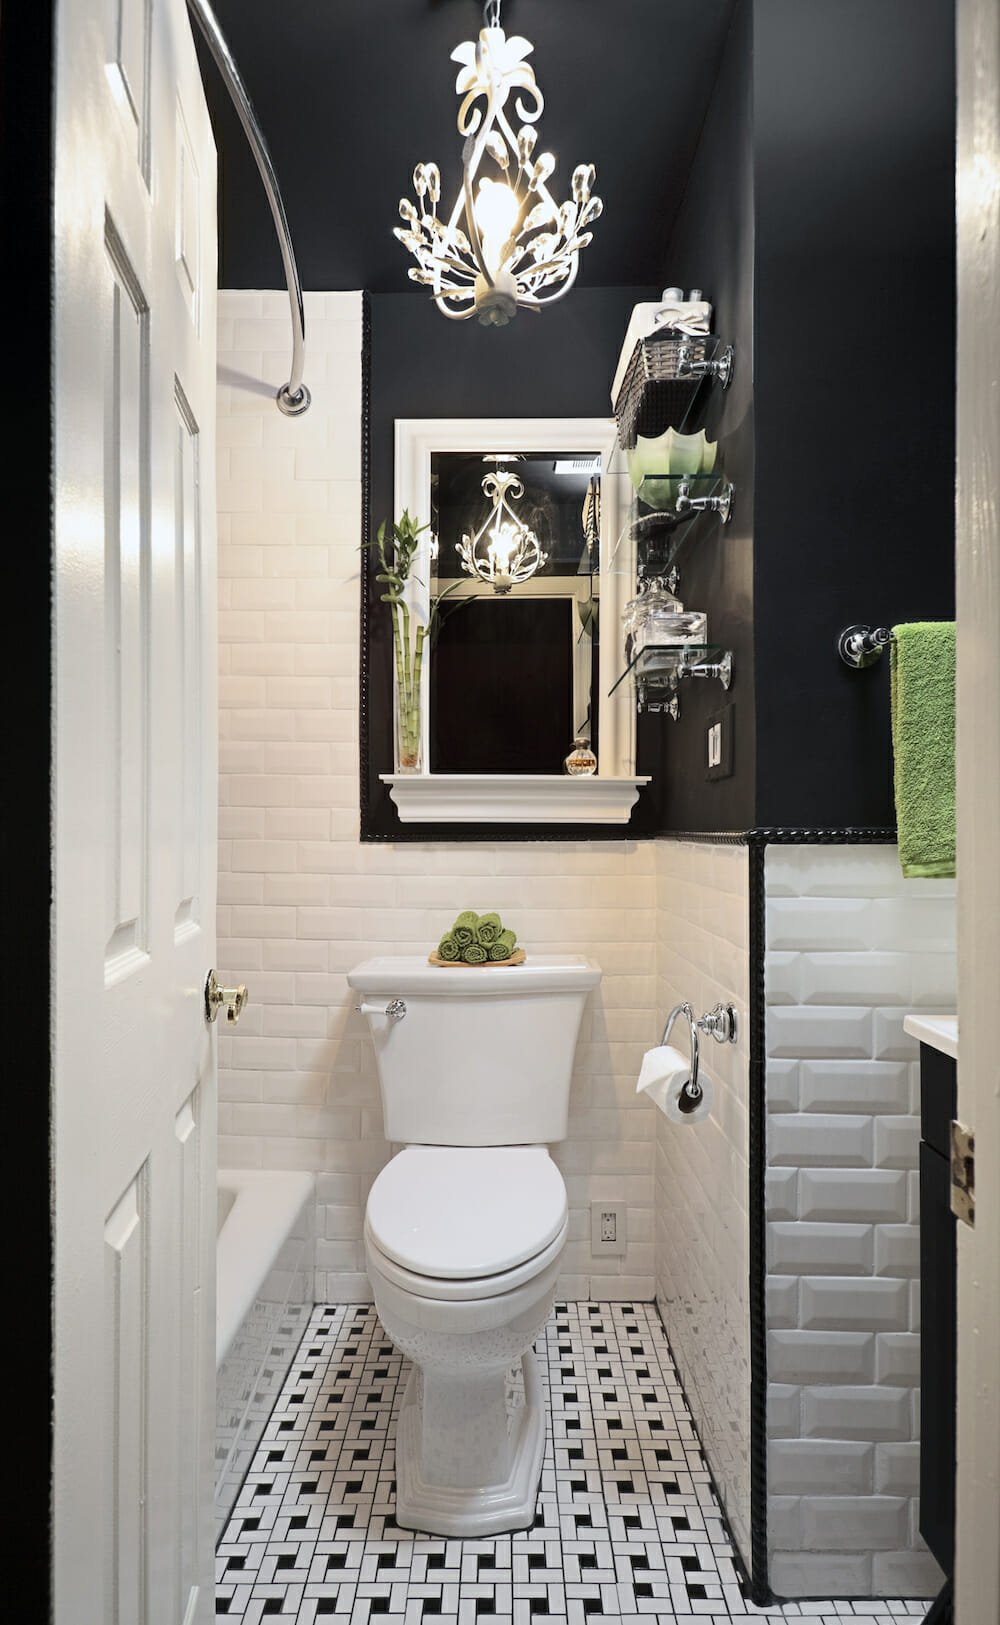 A modern black and white bathroom with basketweave tile